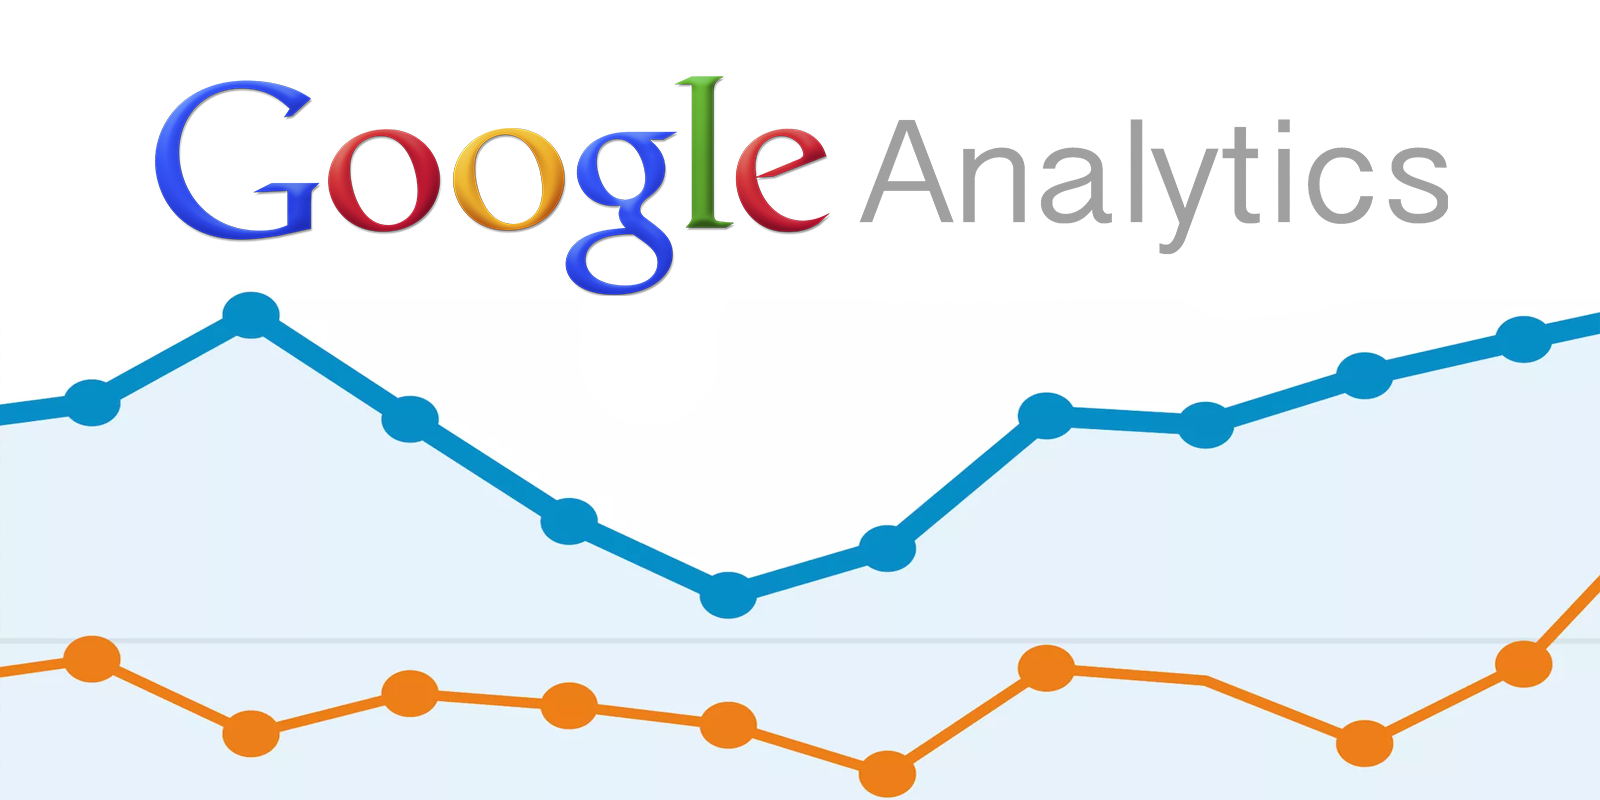 Como o Google Analytics tem papel fundamental no Marketing Digital